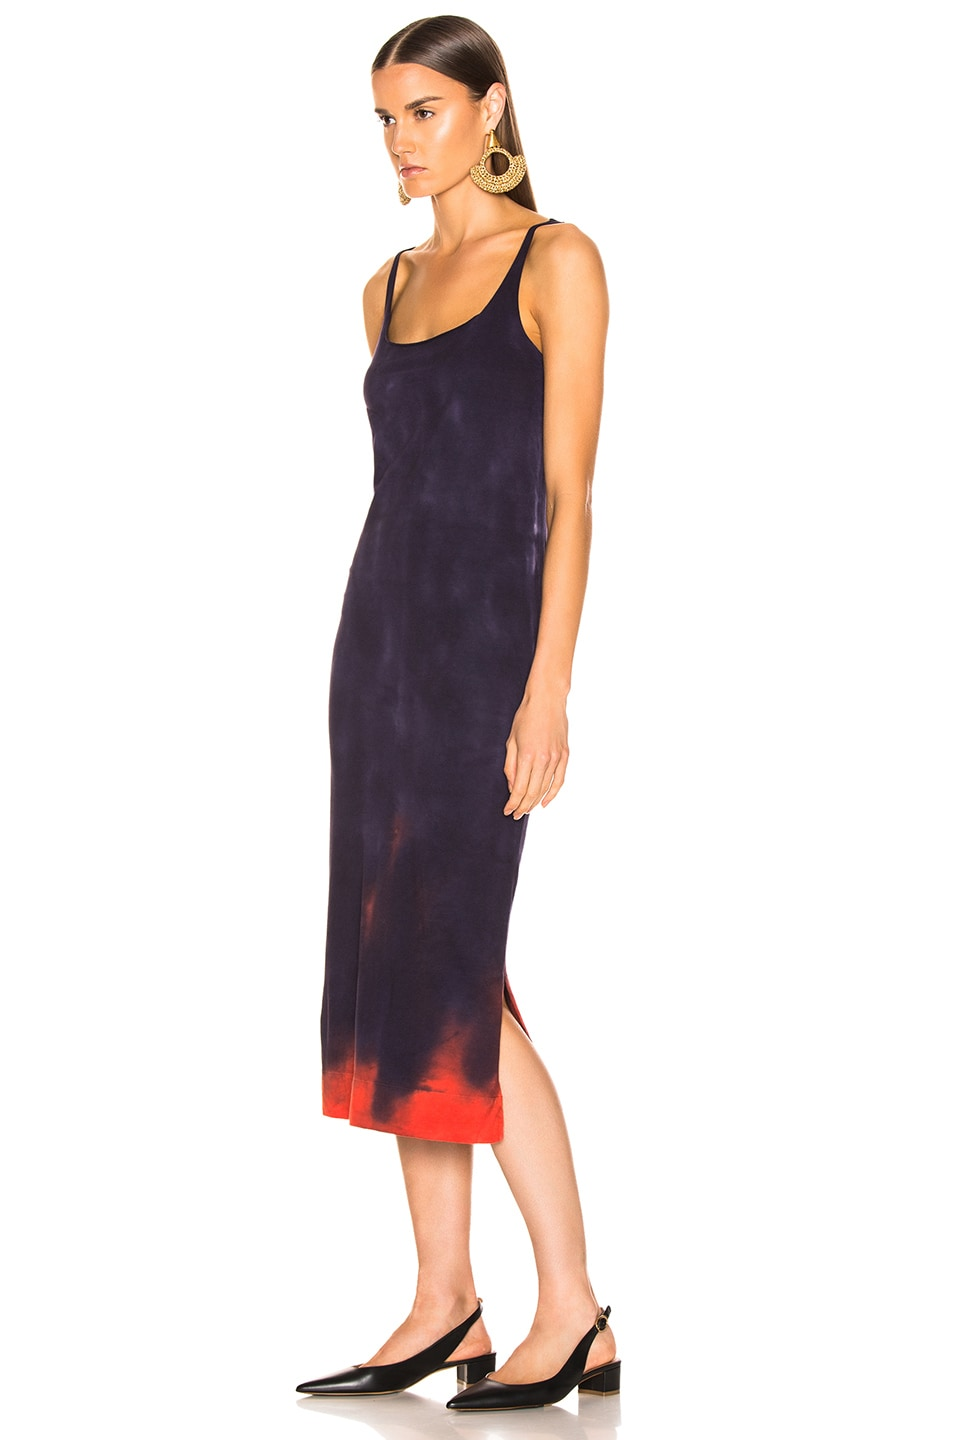 Image 3 of Raquel Allegra Layering Tank Dress in Nightshade Tie Dye